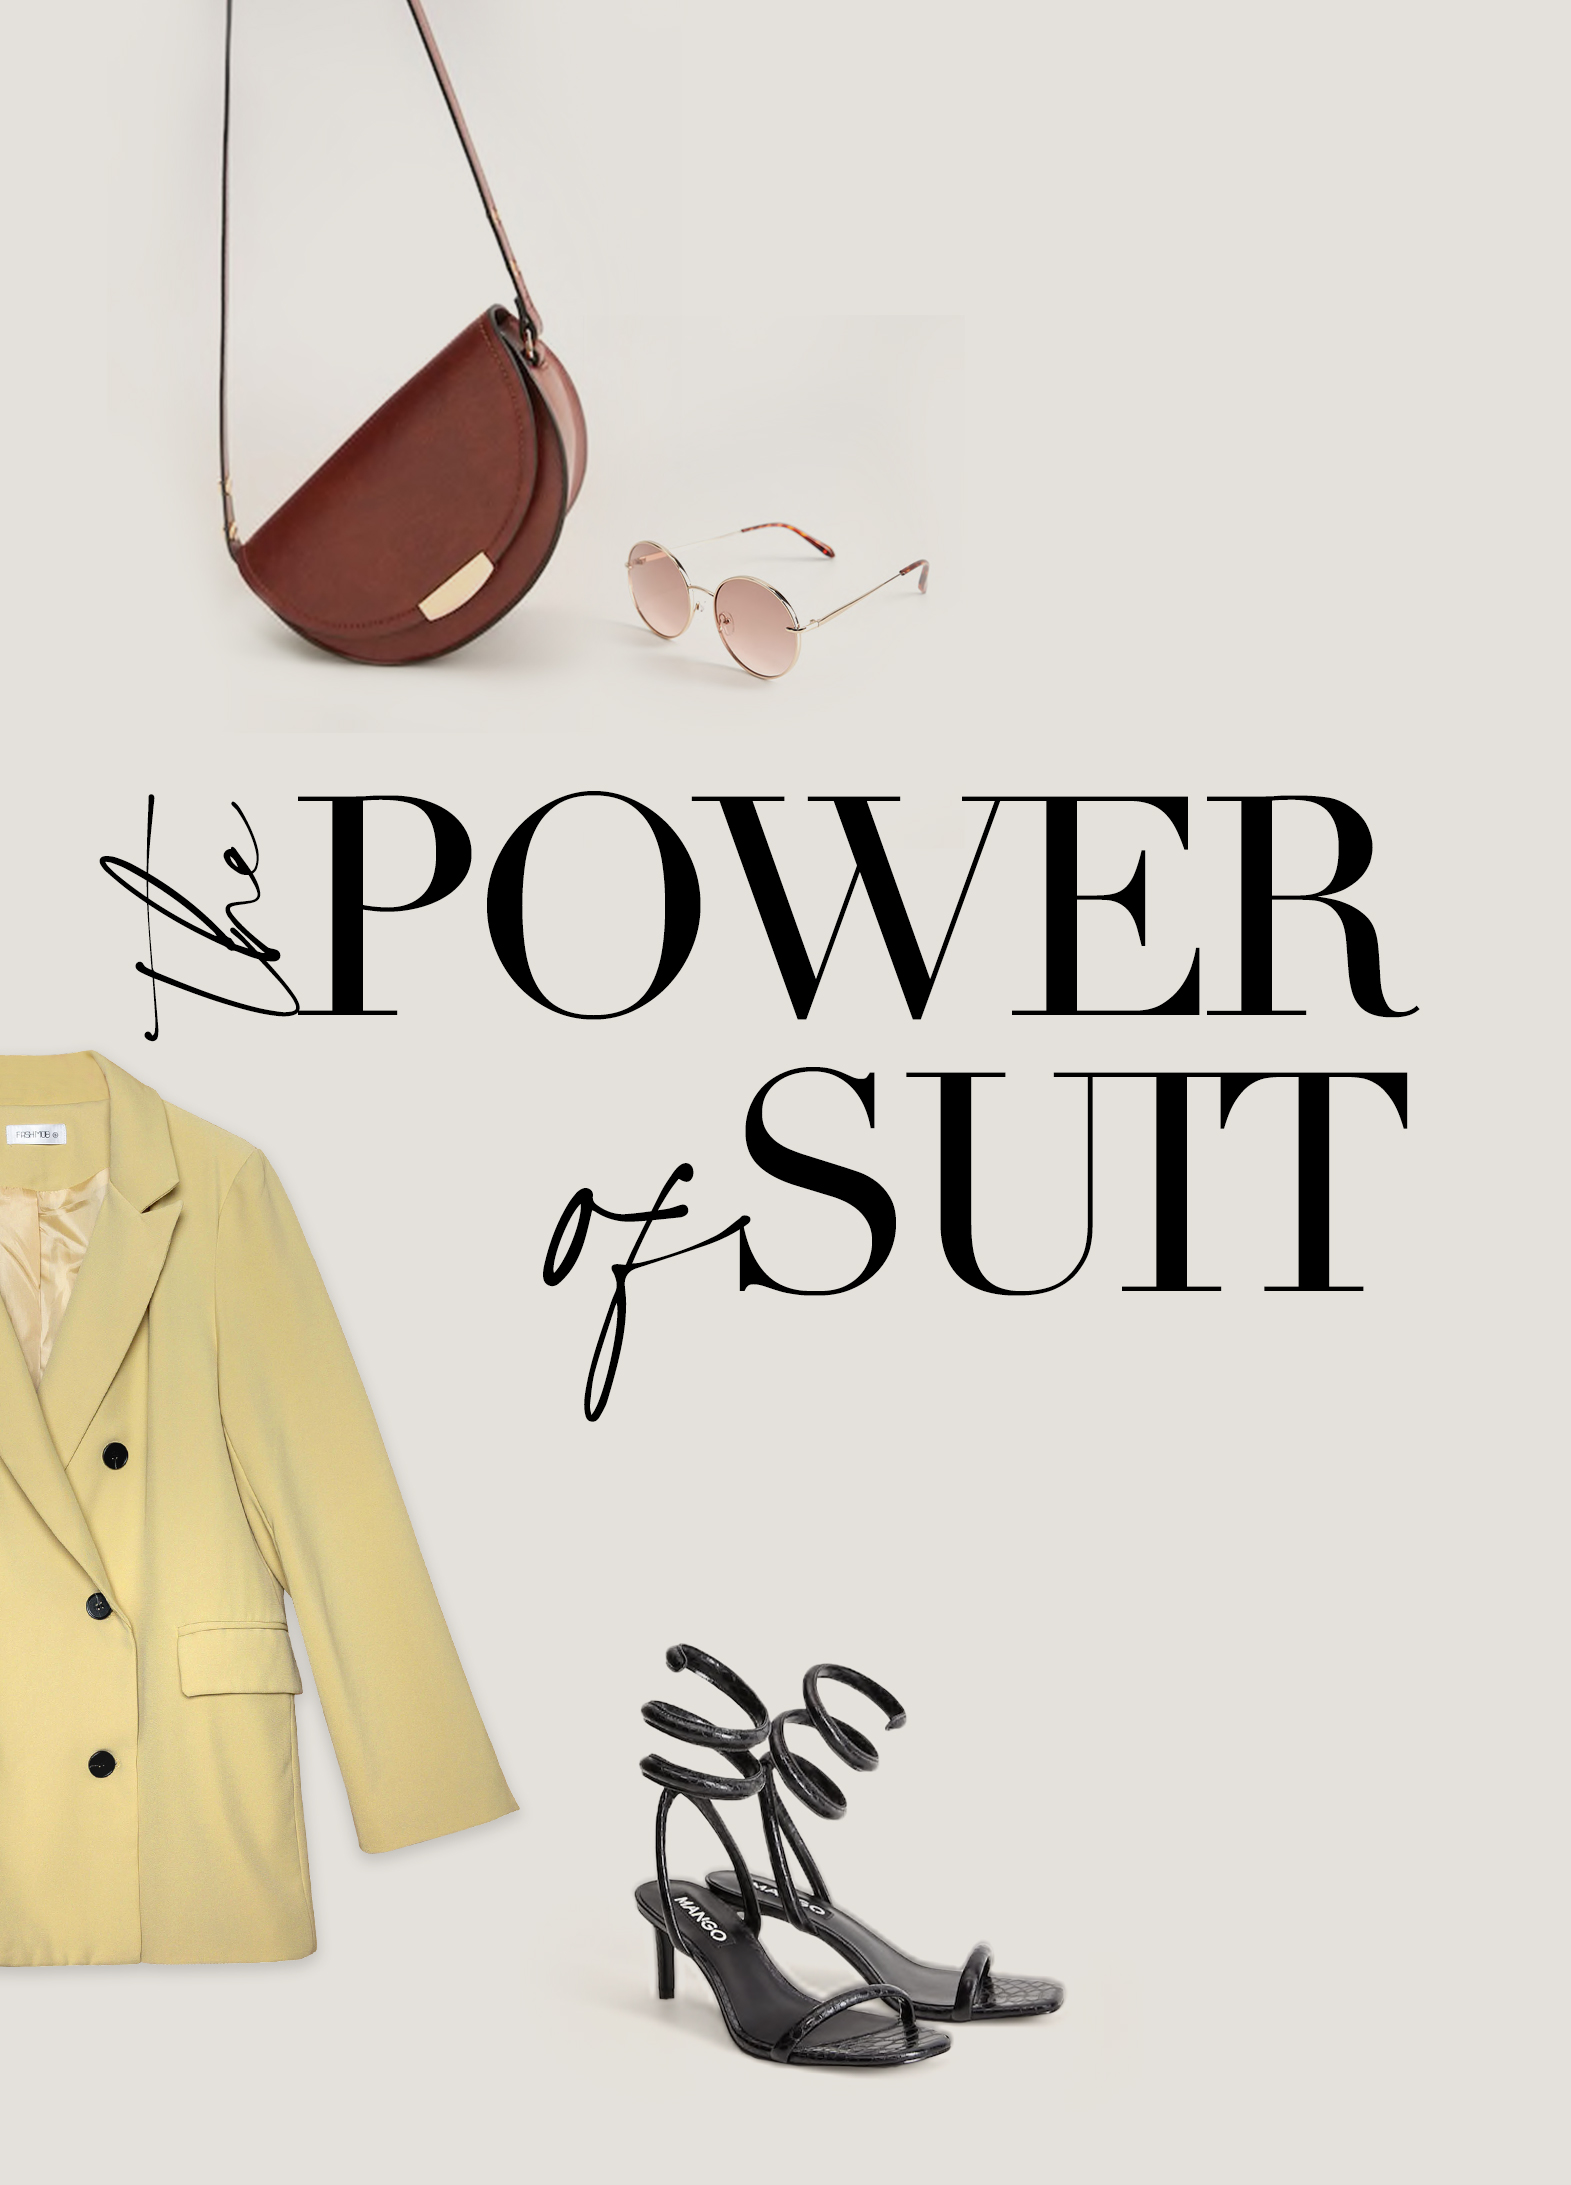 THE POWER OF SUIT!